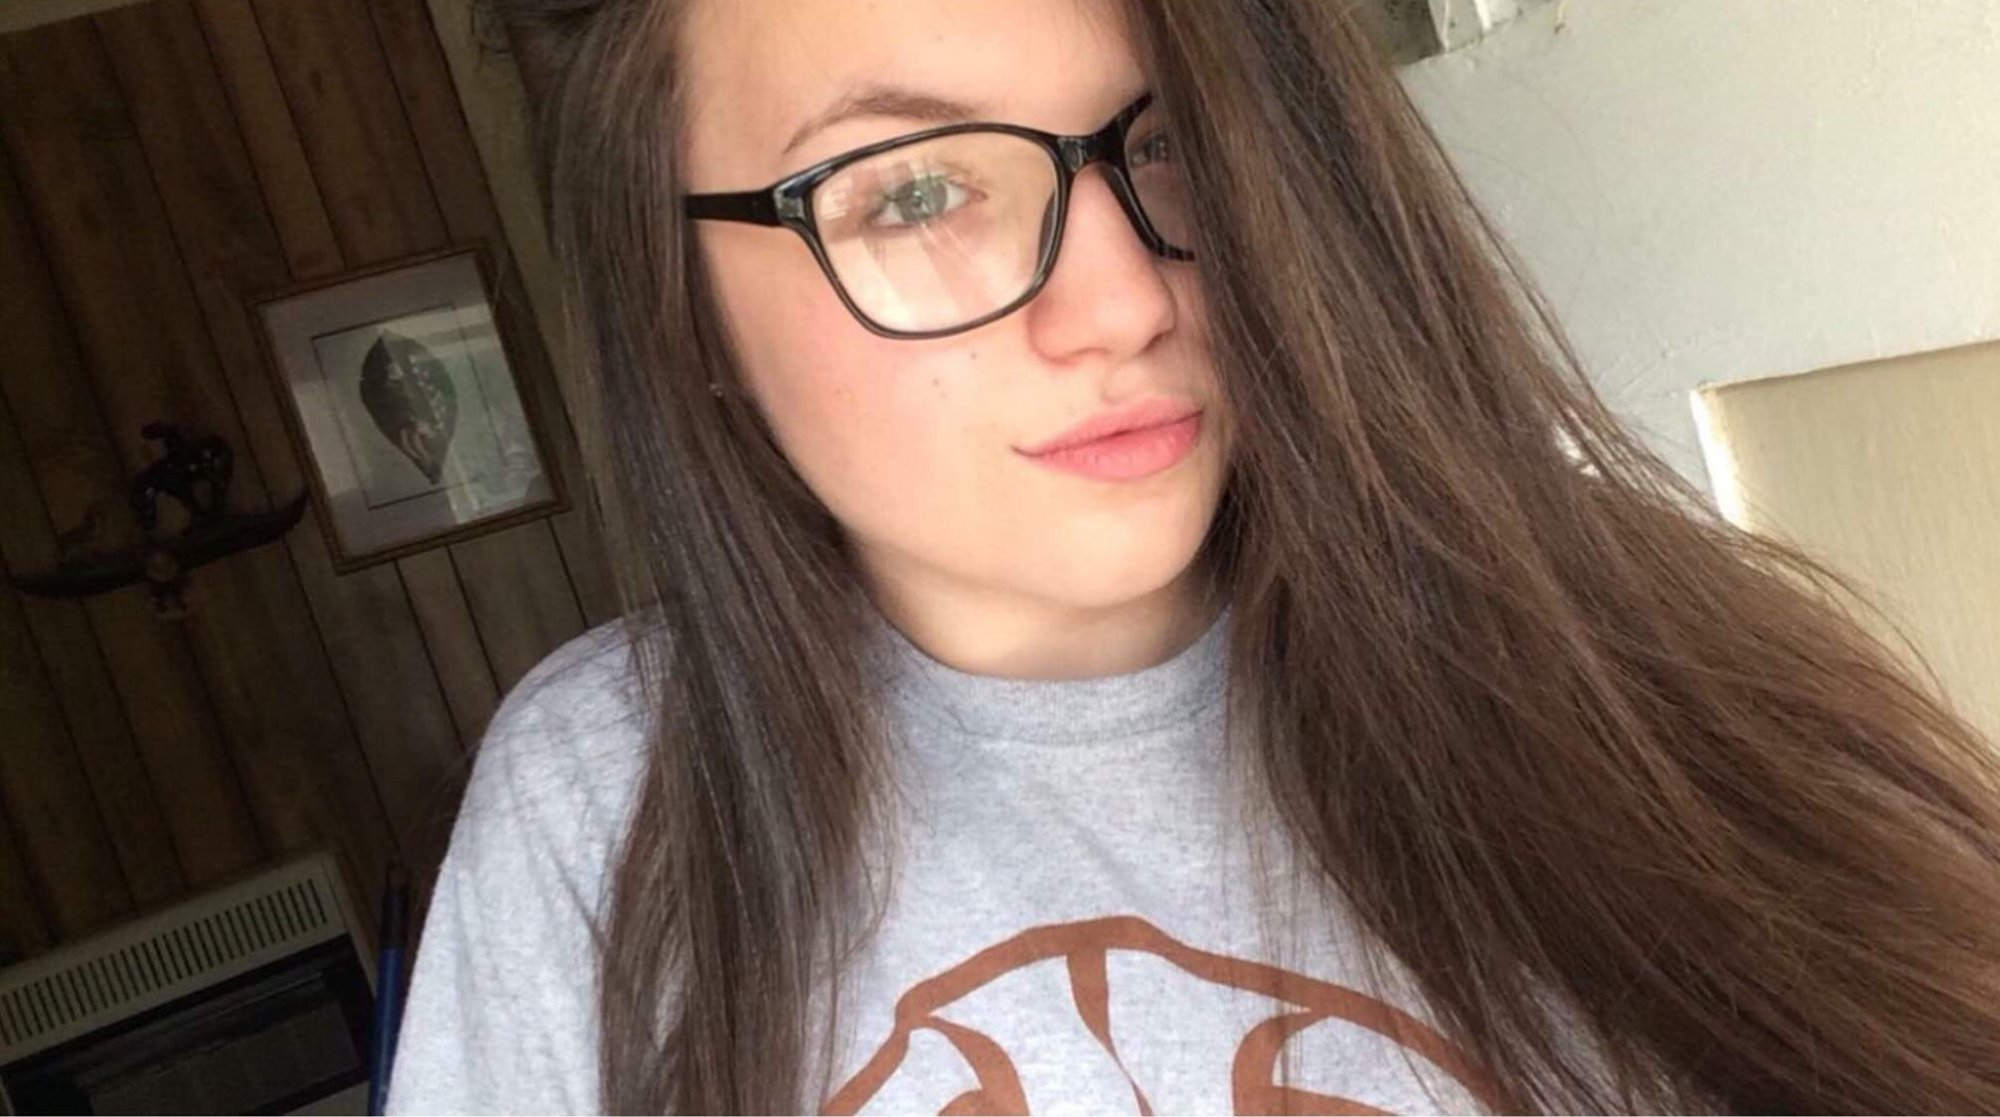 Katie Young, who was reported missing on Dec. 14, 2018, out of Fort Smith.